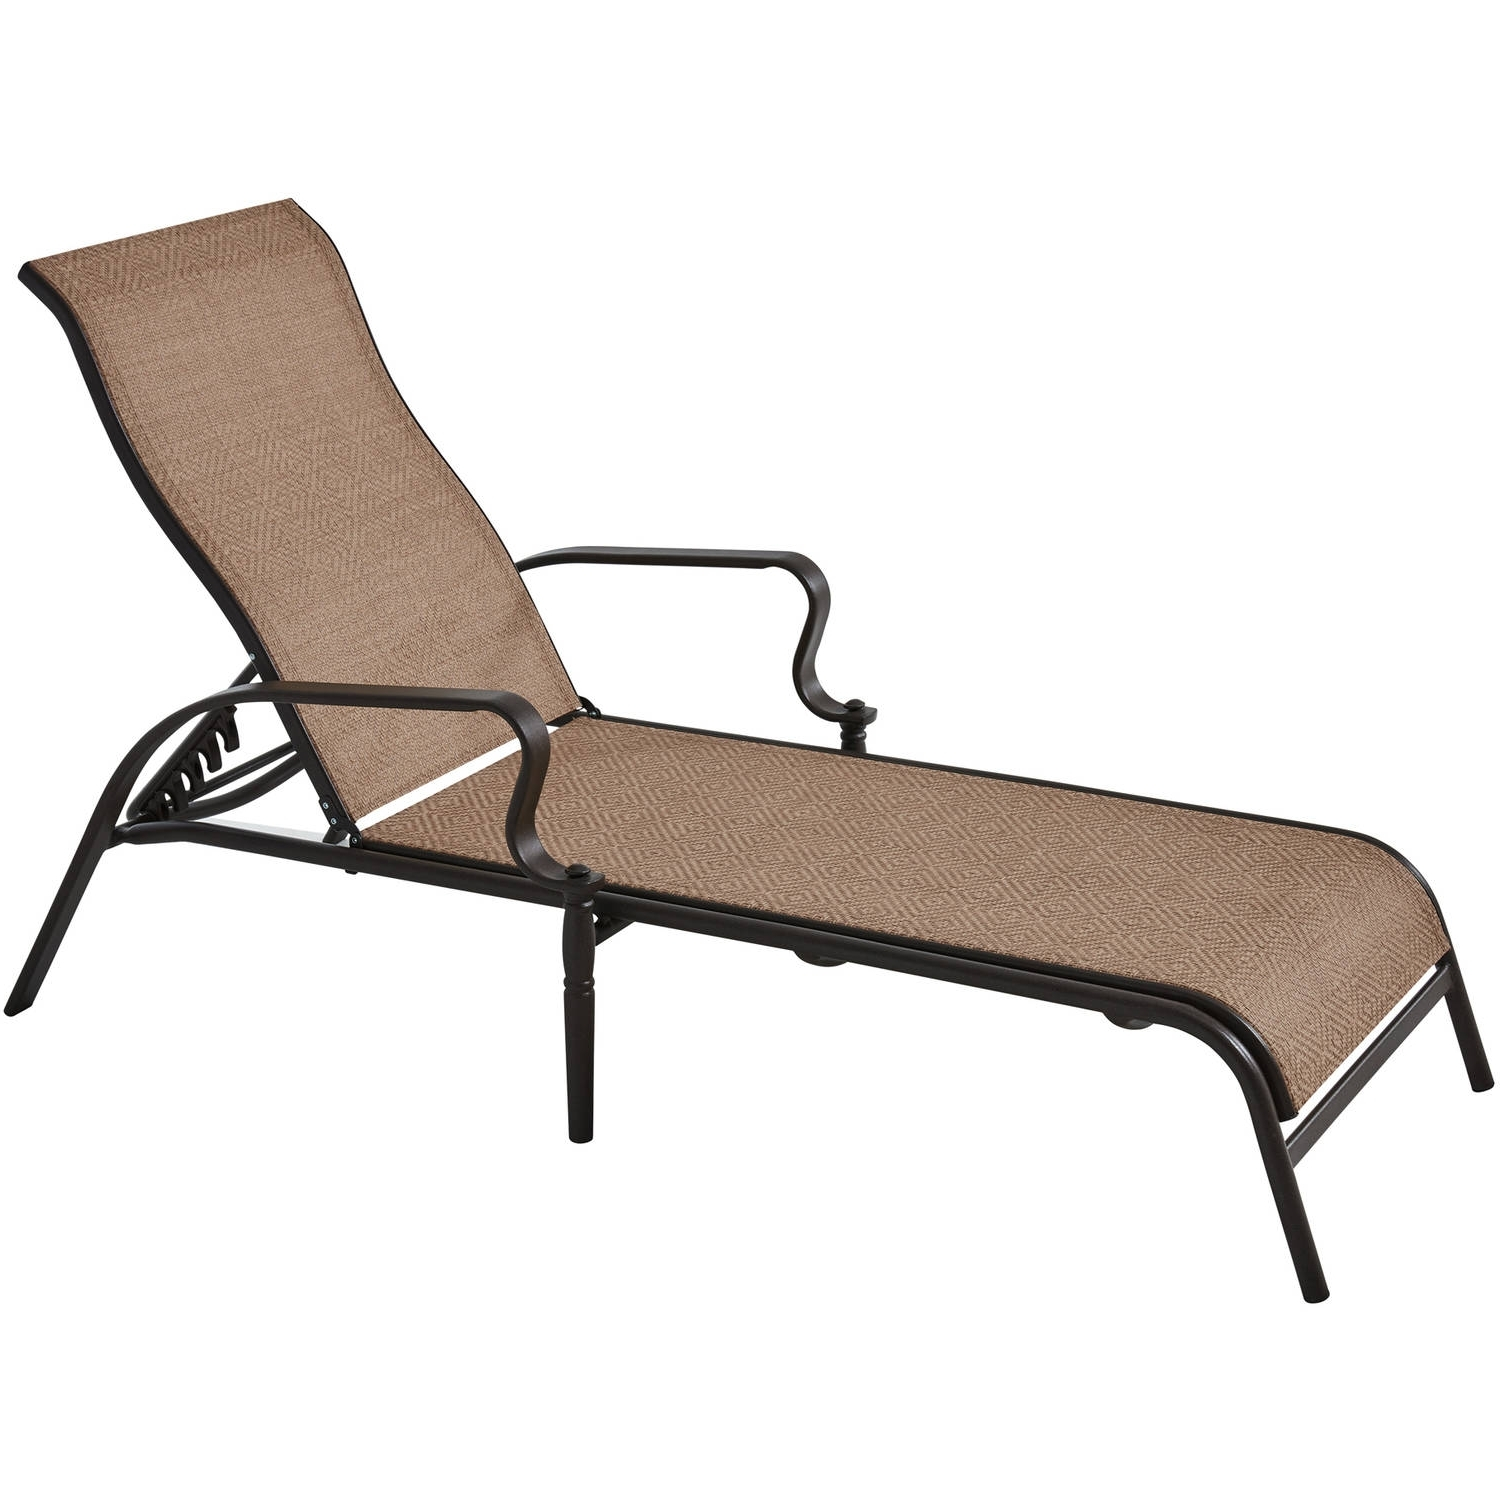 Sears Chaise Lounges With Widely Used Mainstays Wesley Creek Sling Outdoor Chaise Lounge – Walmart (View 12 of 15)